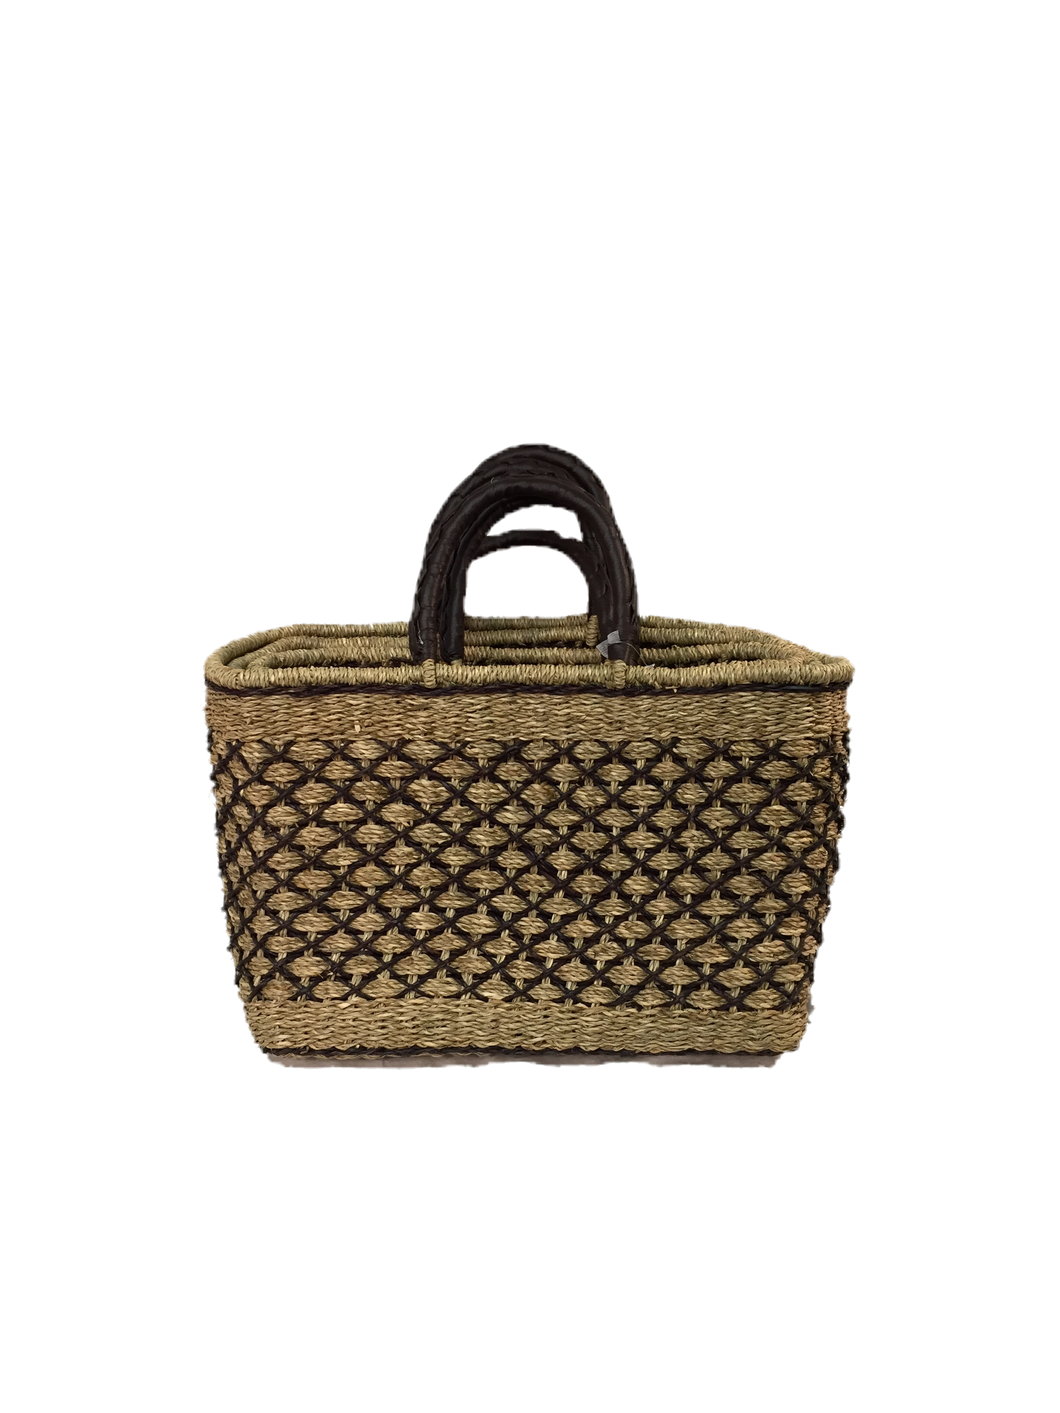 Seagrass Rectangular Bag - VAS11660A